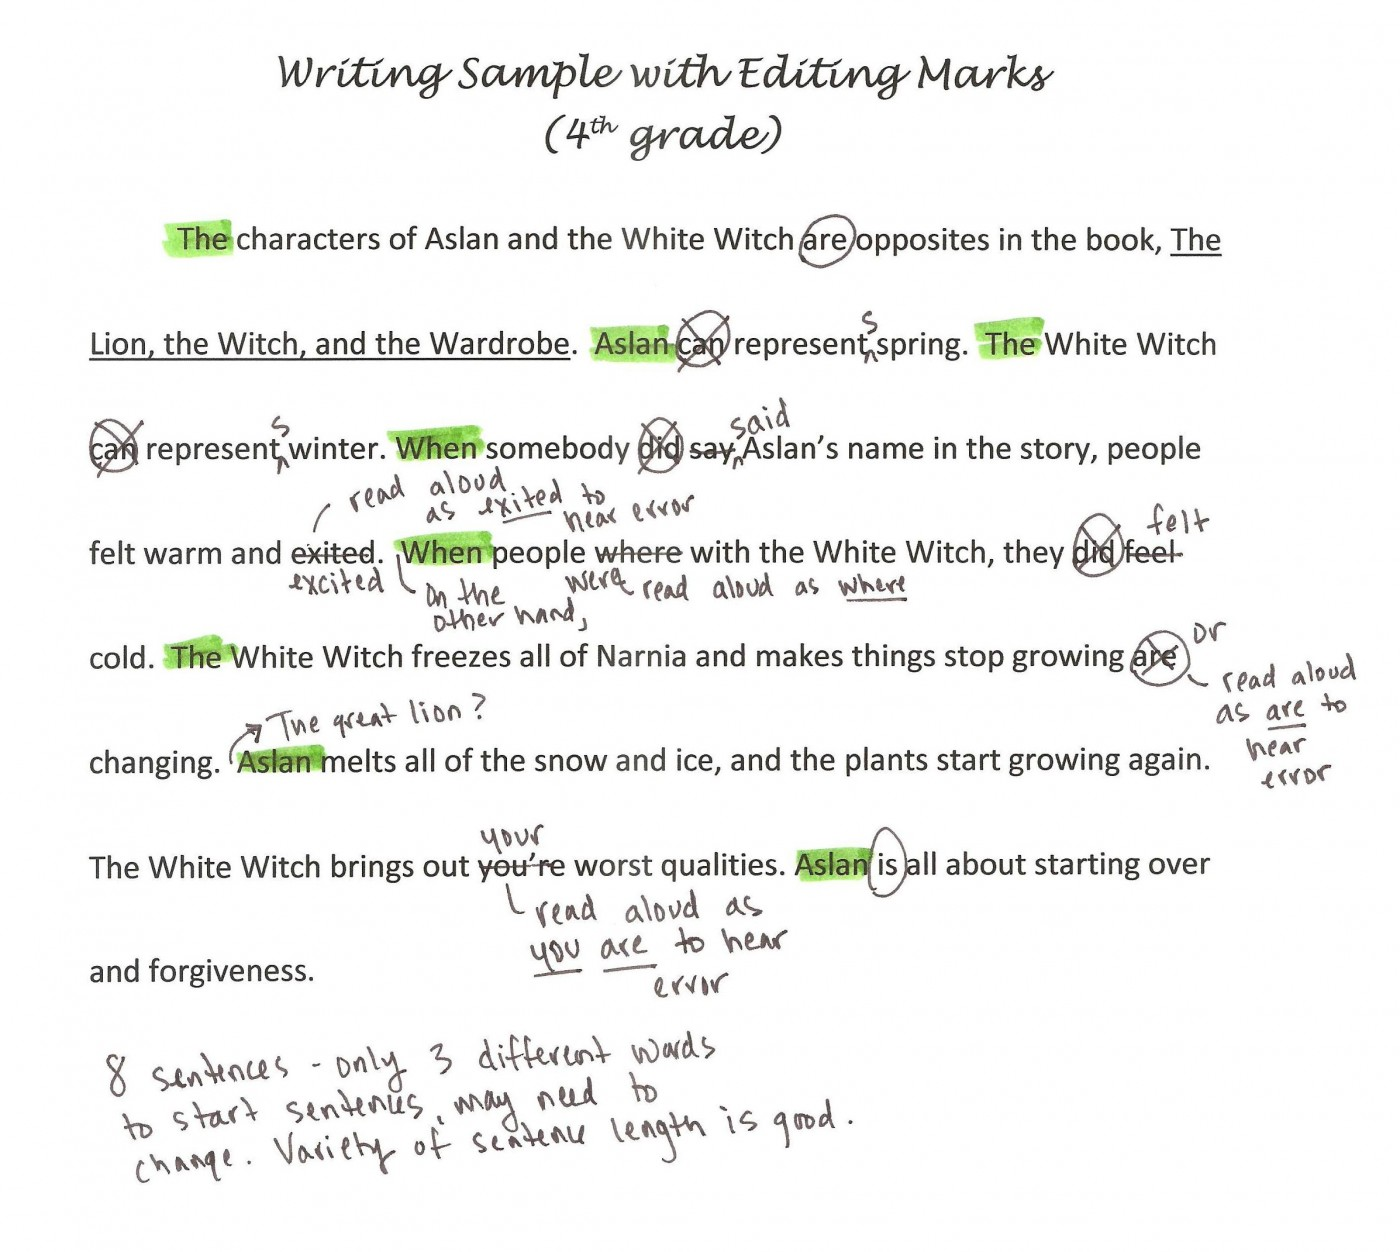 003 Essay Editor Writing Sample With Editing Marks1 Marvelous Service Generator Free 1400